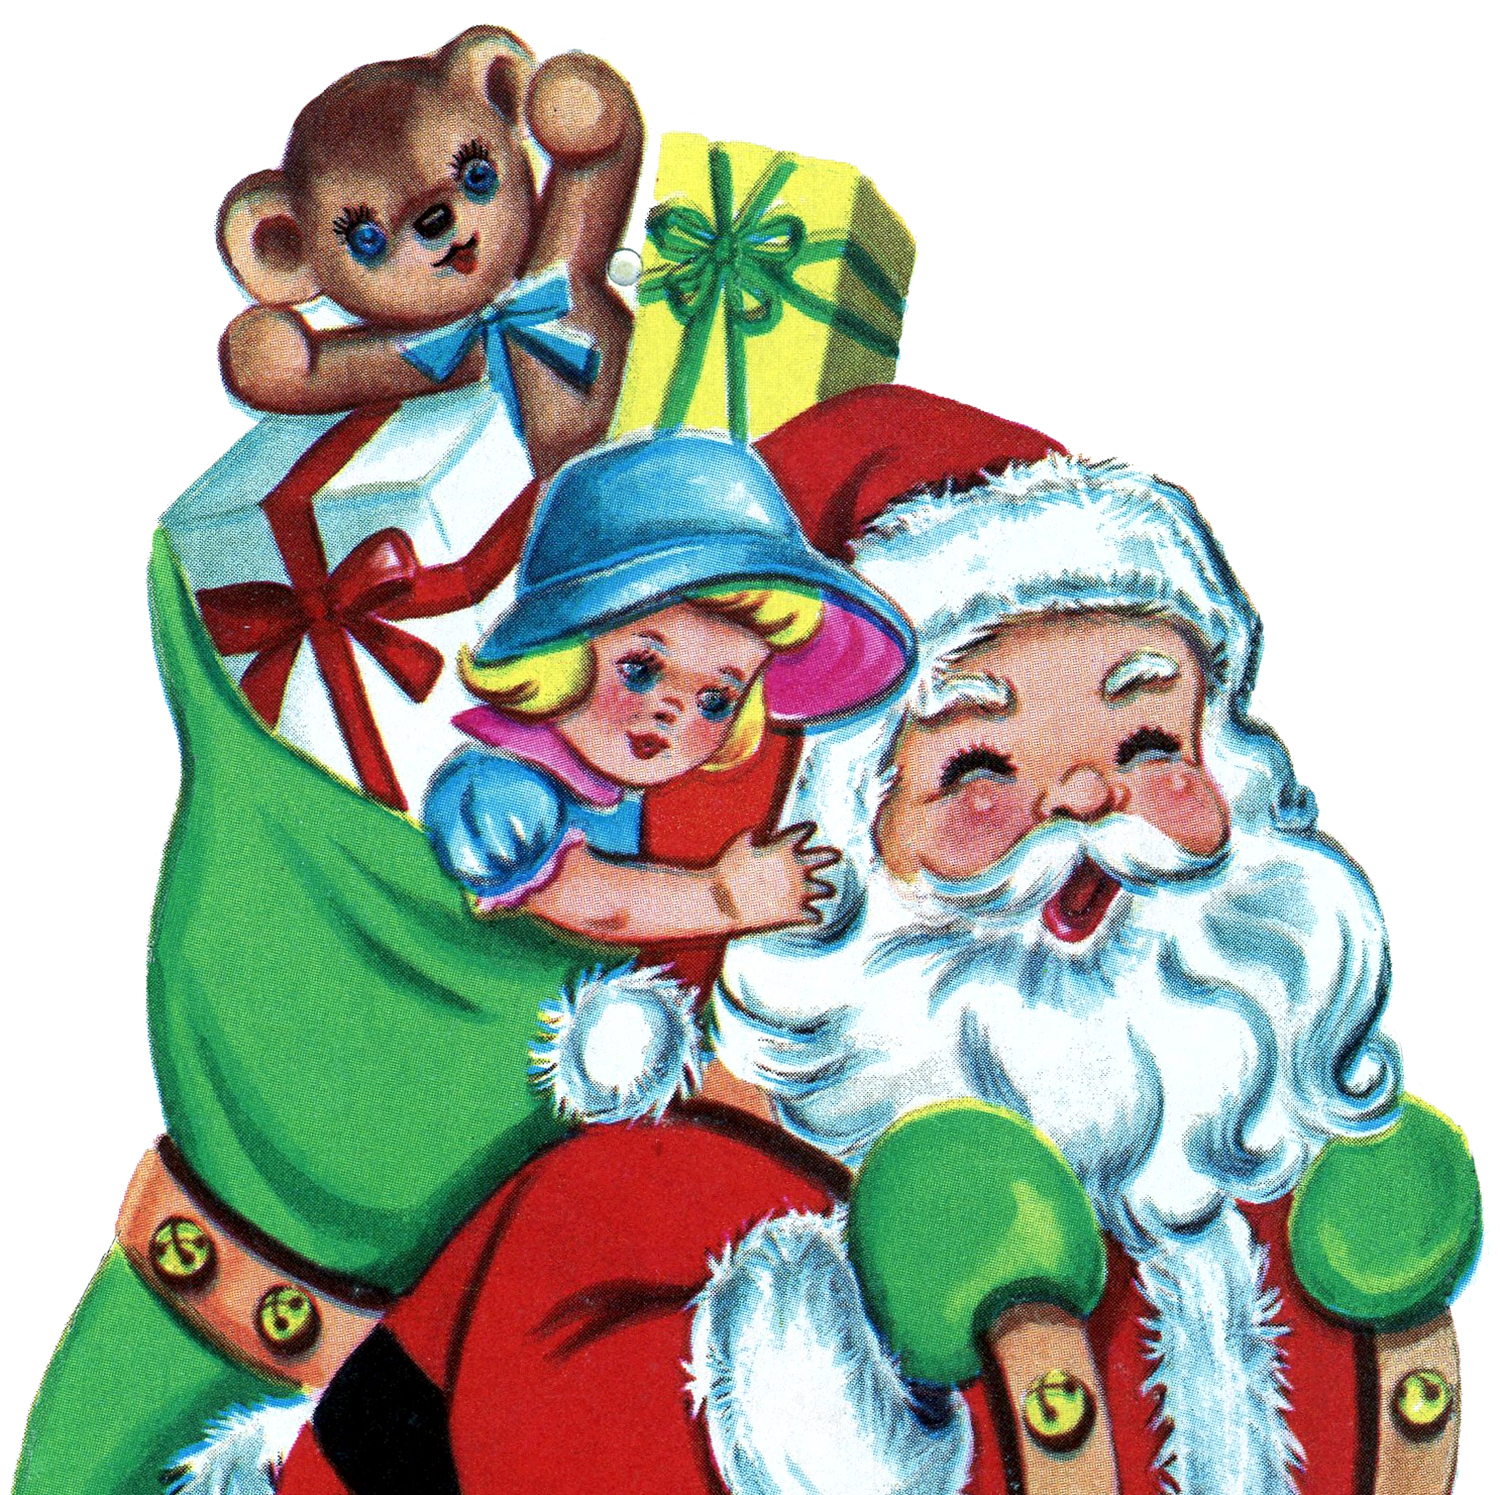 Free Christmas Picture Retro Santa With Toys The